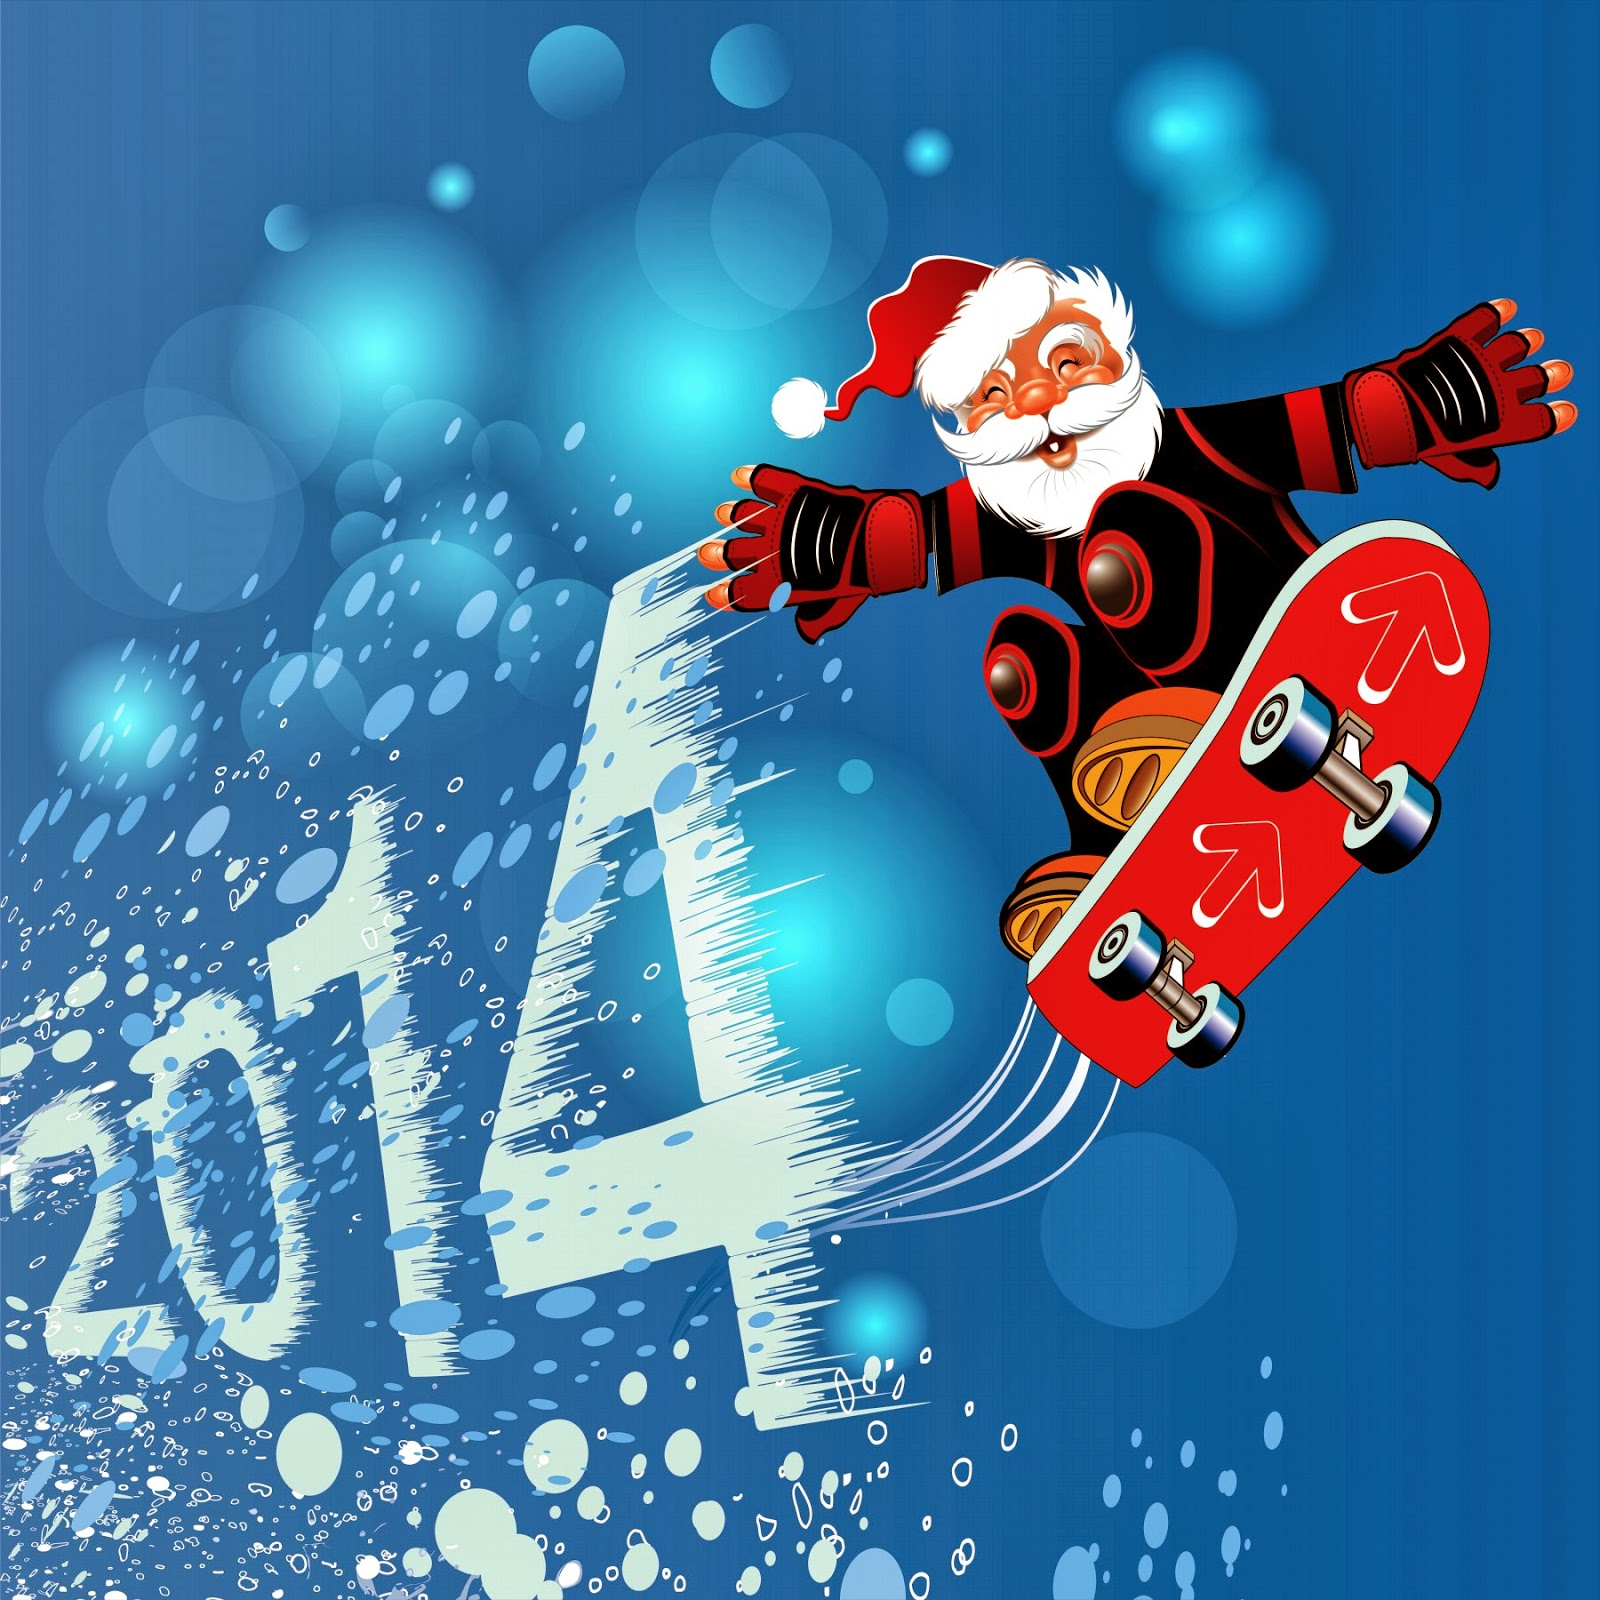 innovv action cam : merry christmas and a happy 2014!